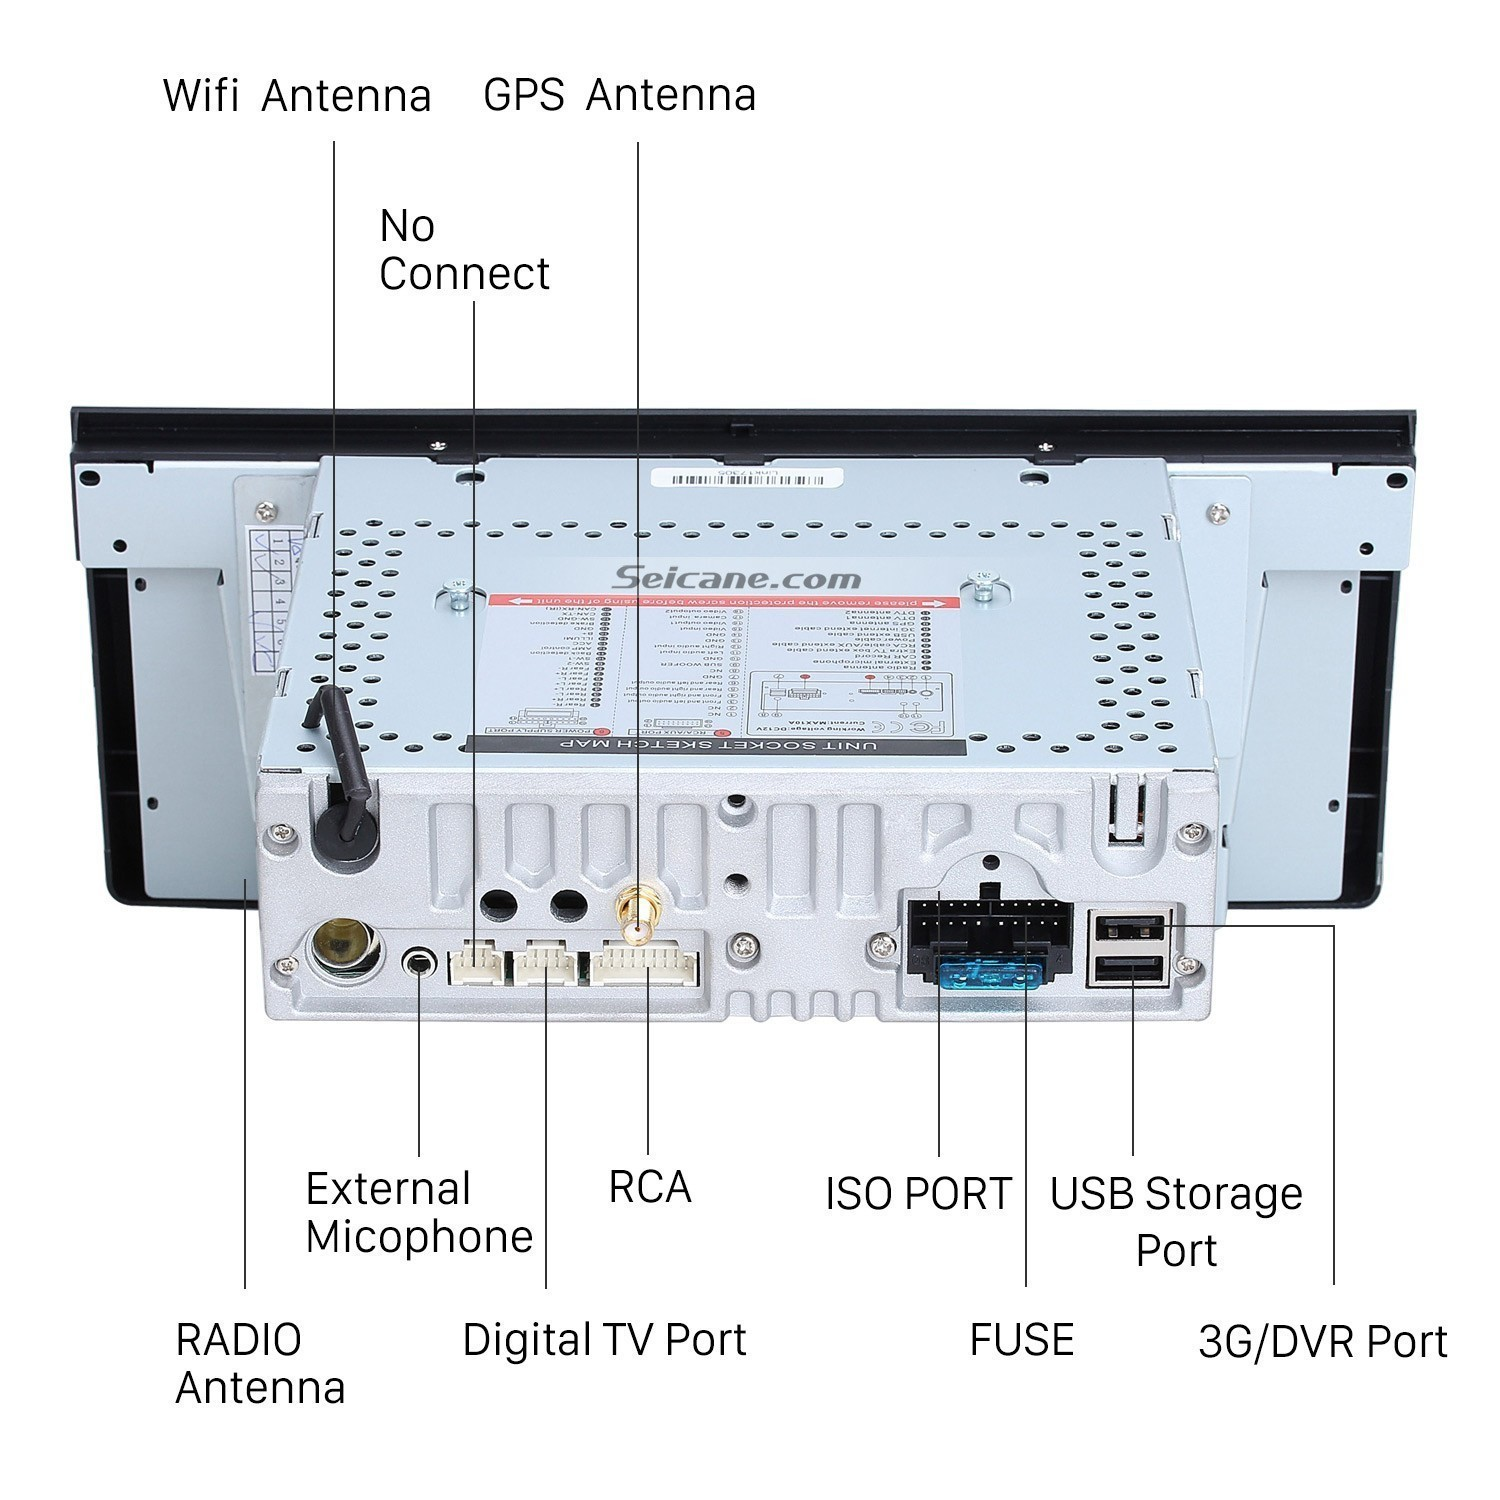 Hid Prox Reader Wiring Diagram Bmw 7 Hid Wiring Diag Worksheet and Wiring Diagram • Of Hid Prox Reader Wiring Diagram 26 Bit Tcp Ip Network Access Control Board Panel Controller for 2